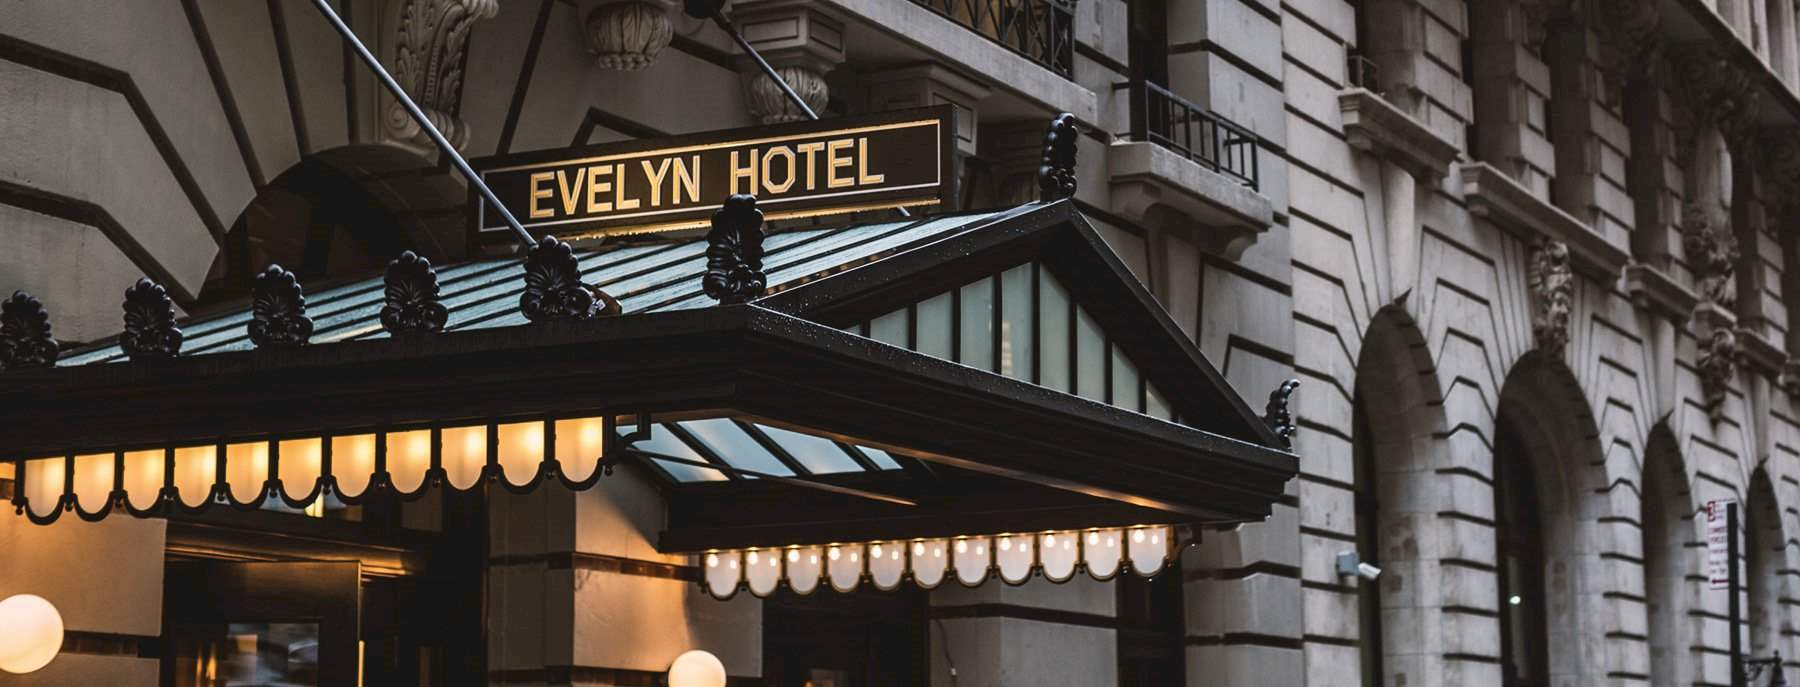 The Evelyn An Art Deco Hotel In New York City S Nomad